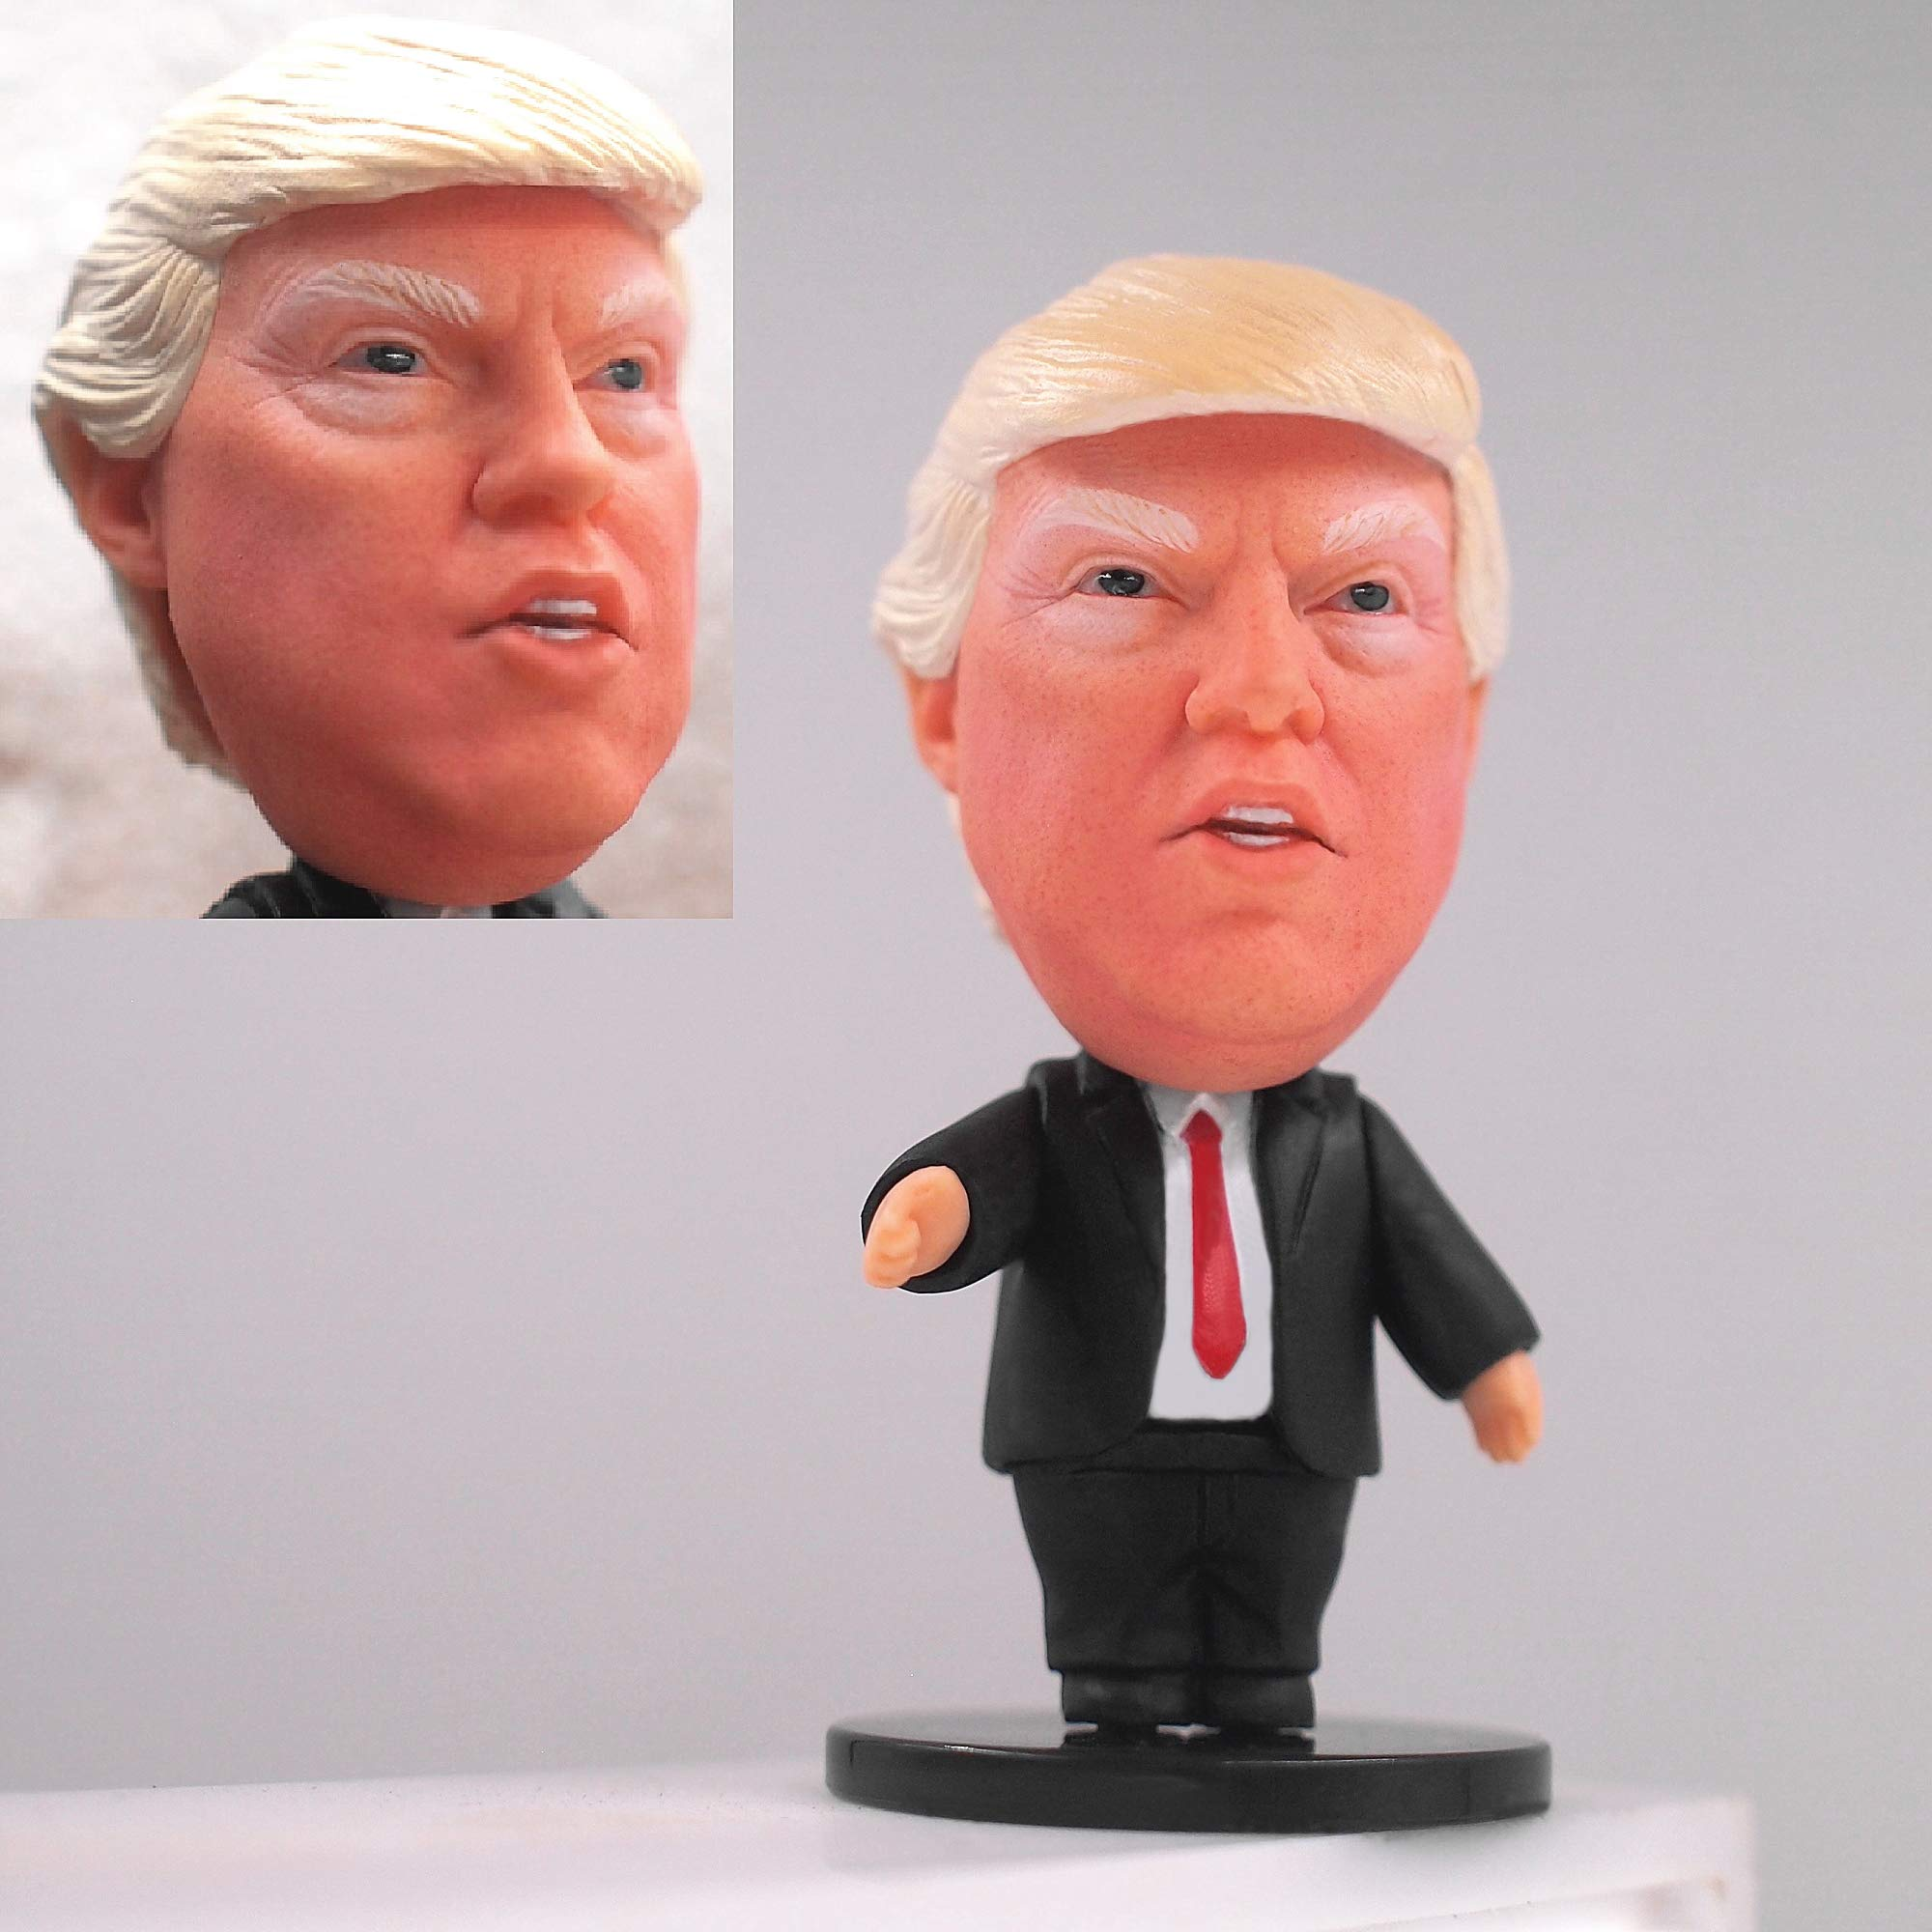 ZXT-parts Donald Trump Statue Figures Doll Exquisite Trump Gifts Trump Doll Celebrity President Series.Artist Hand-Painted Face, Collection Boutique.